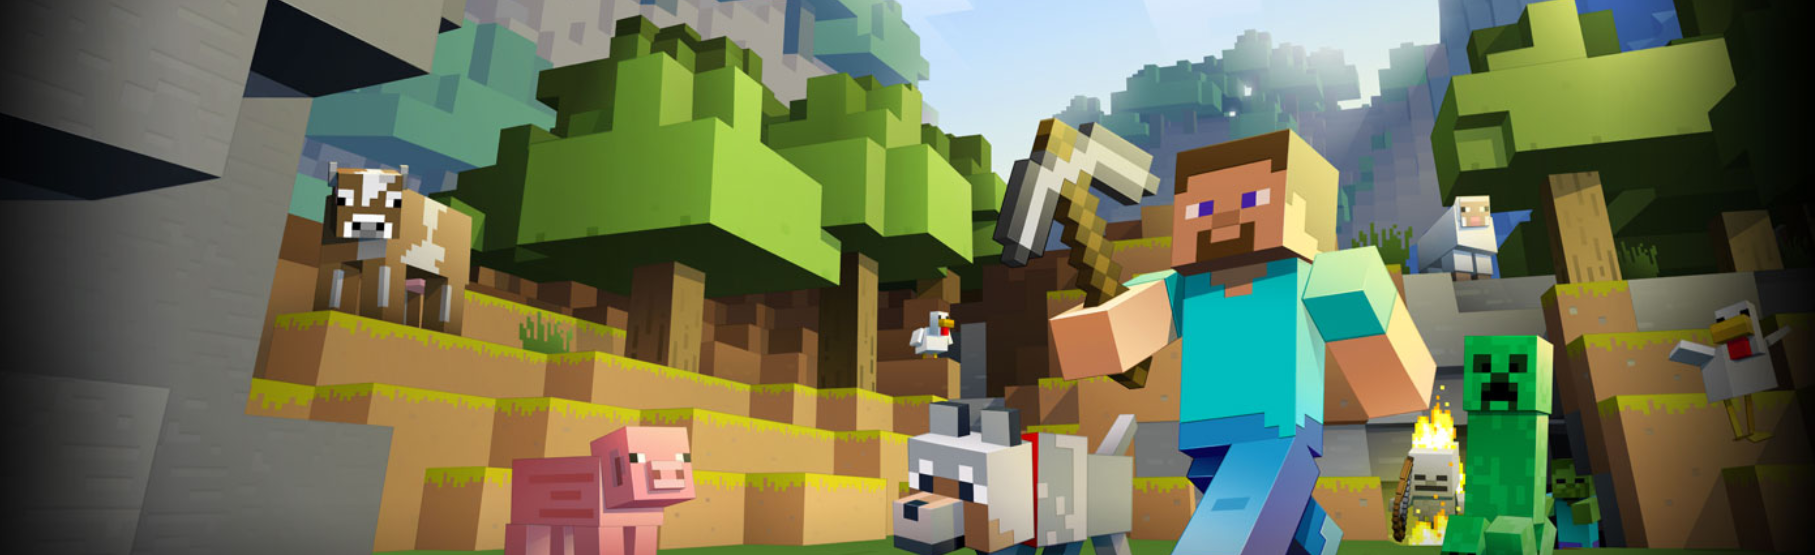 Theological Gamer: Greg Recommends Minecraft (For PC with Mods)